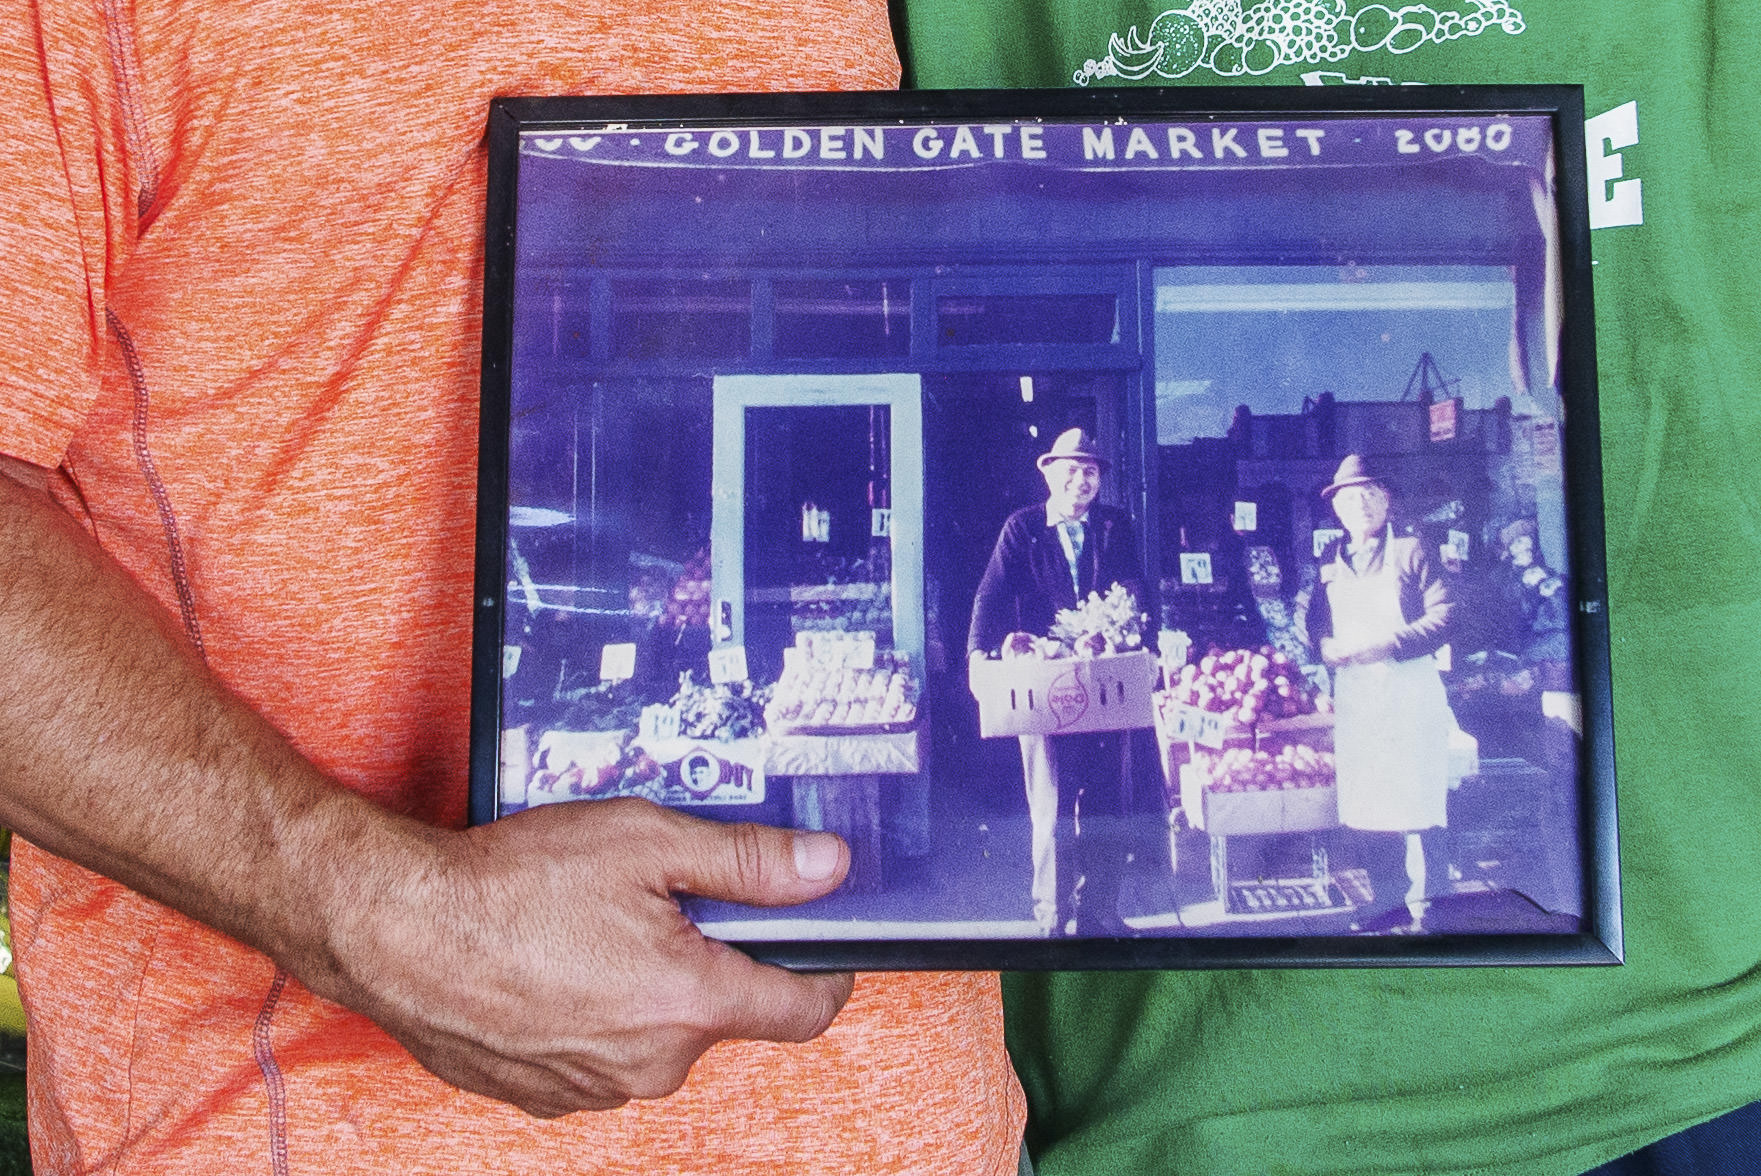 GoldenGates grocer on Flatbush Avenue. Owner with son holding up photo f grocery when owned by grandfather